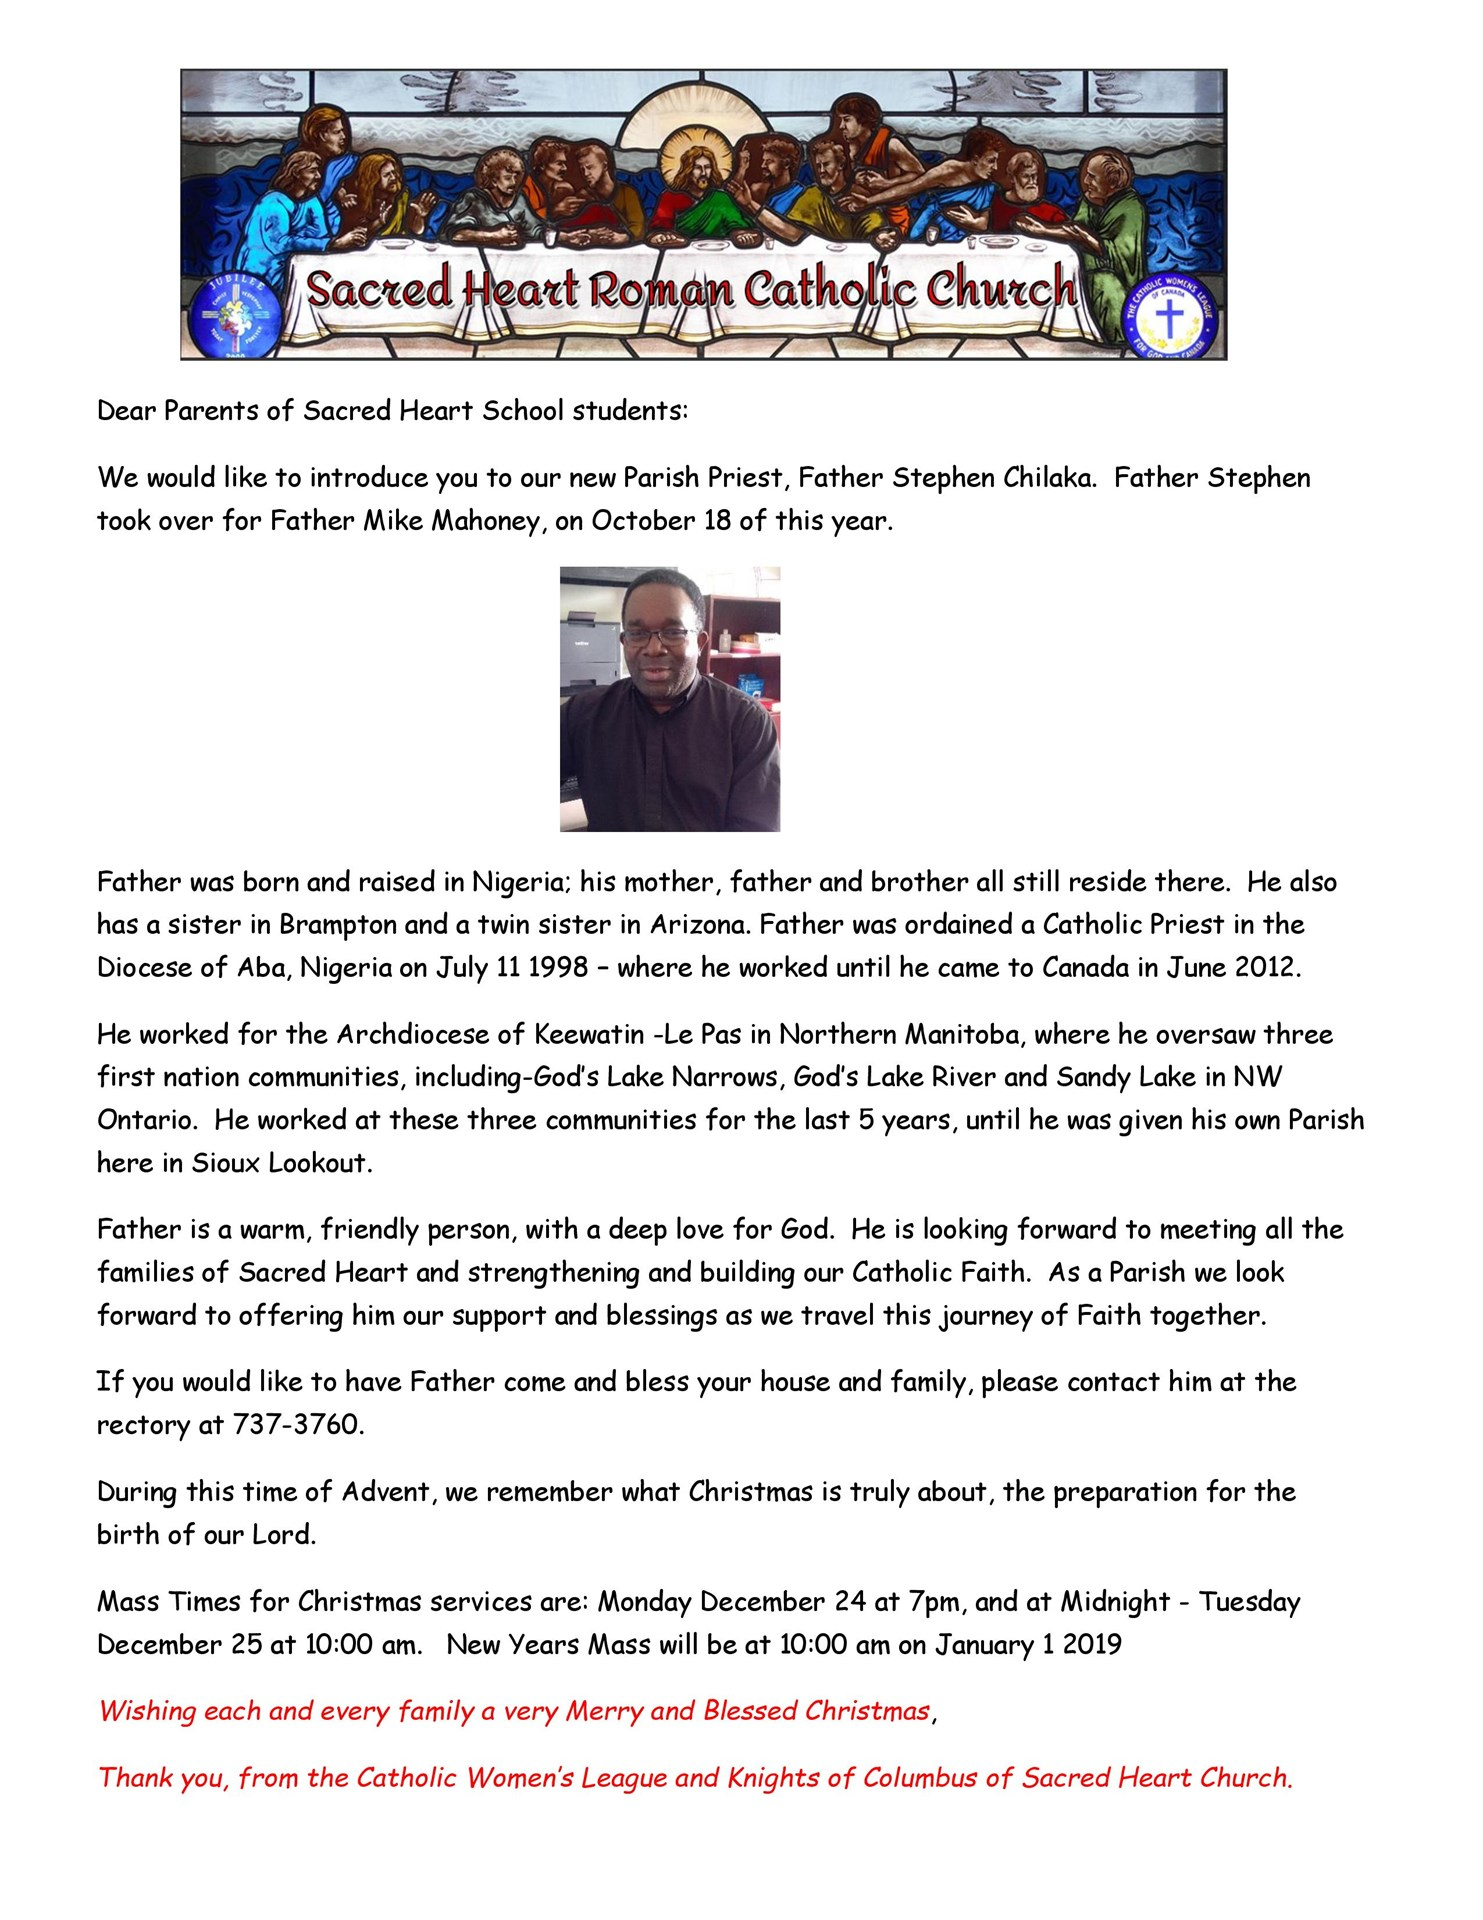 introduction of Father Stephen-page-001.jpg